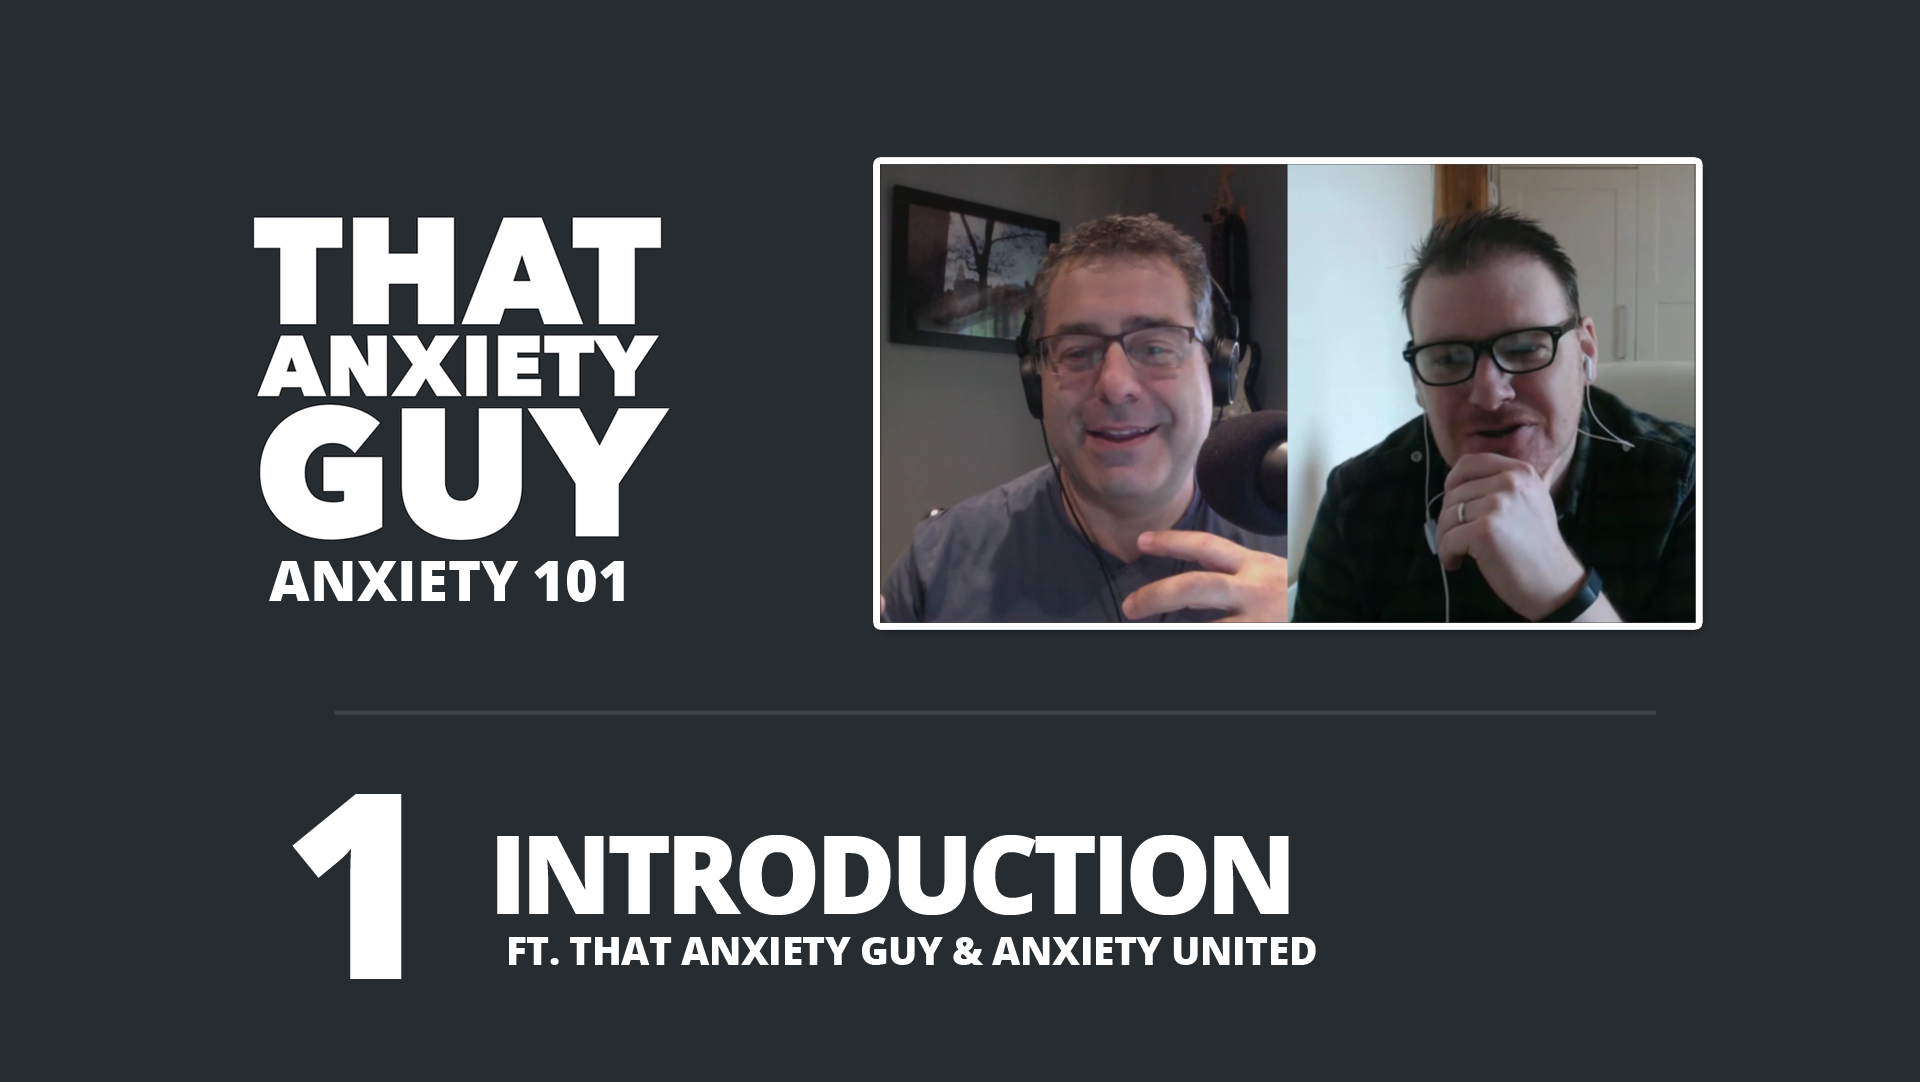 Anxiety 101 - Episode 1